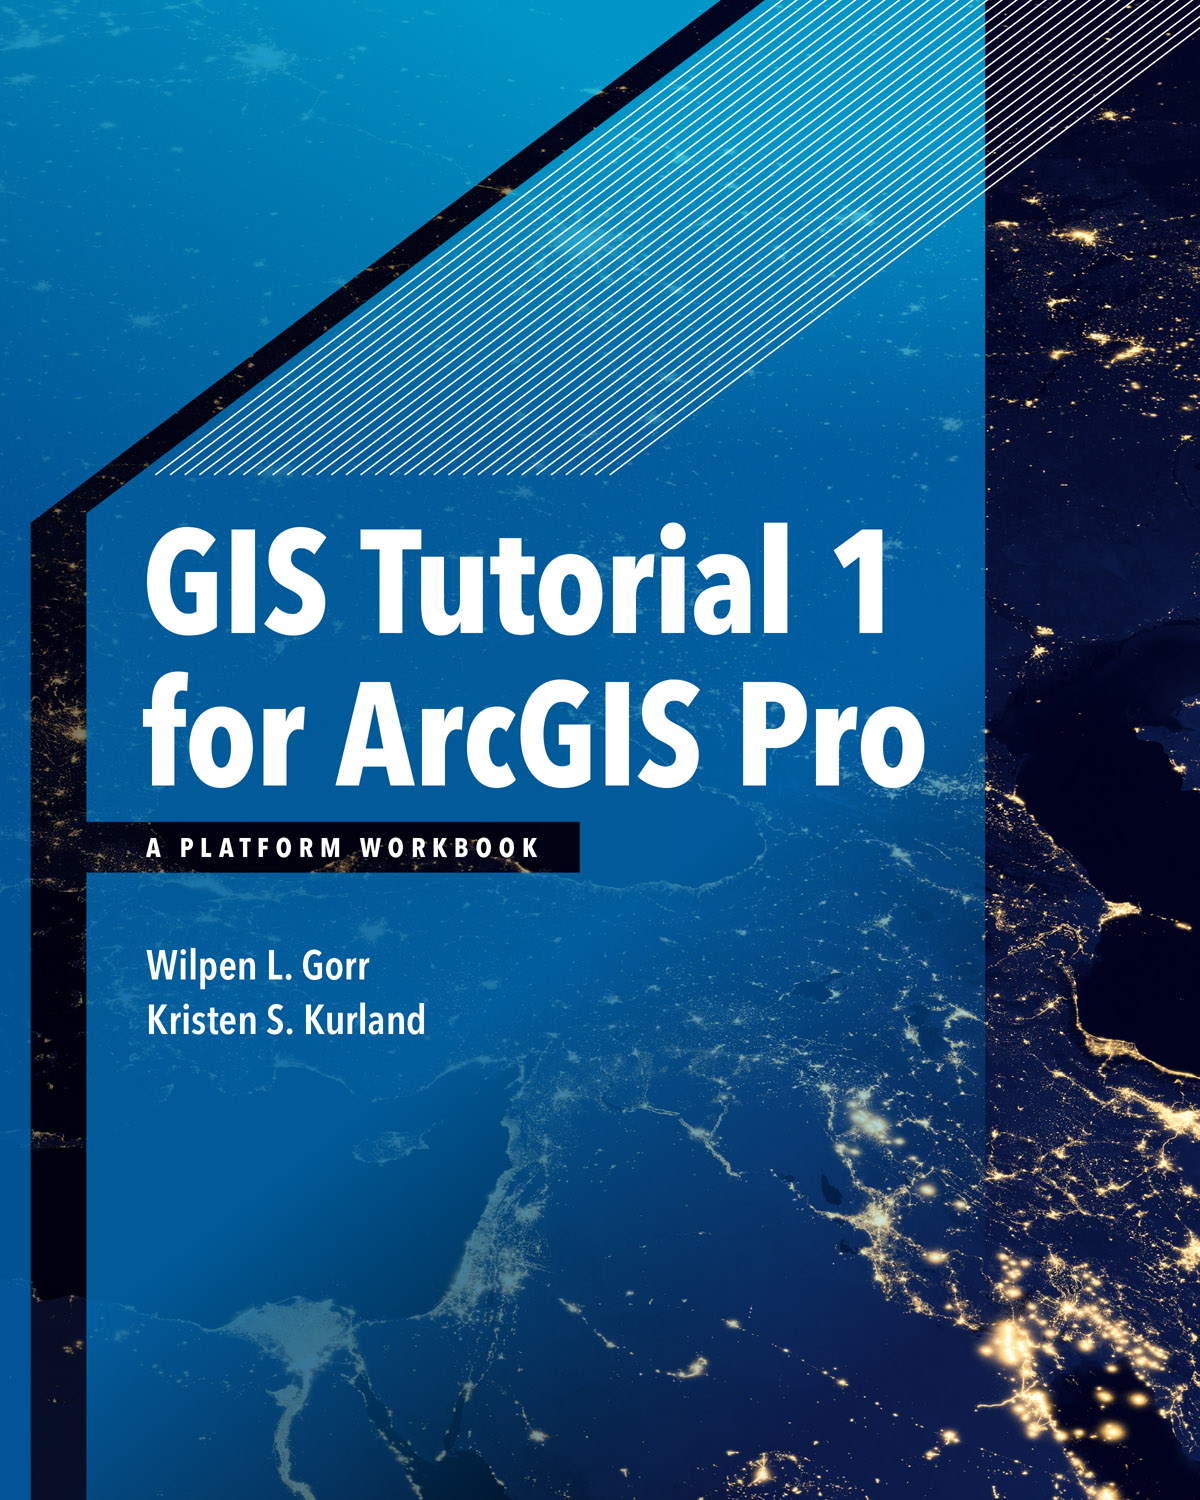 <em>GIS Tutorial 1 for ArcGIS Pro: A Platform Workbook</em>